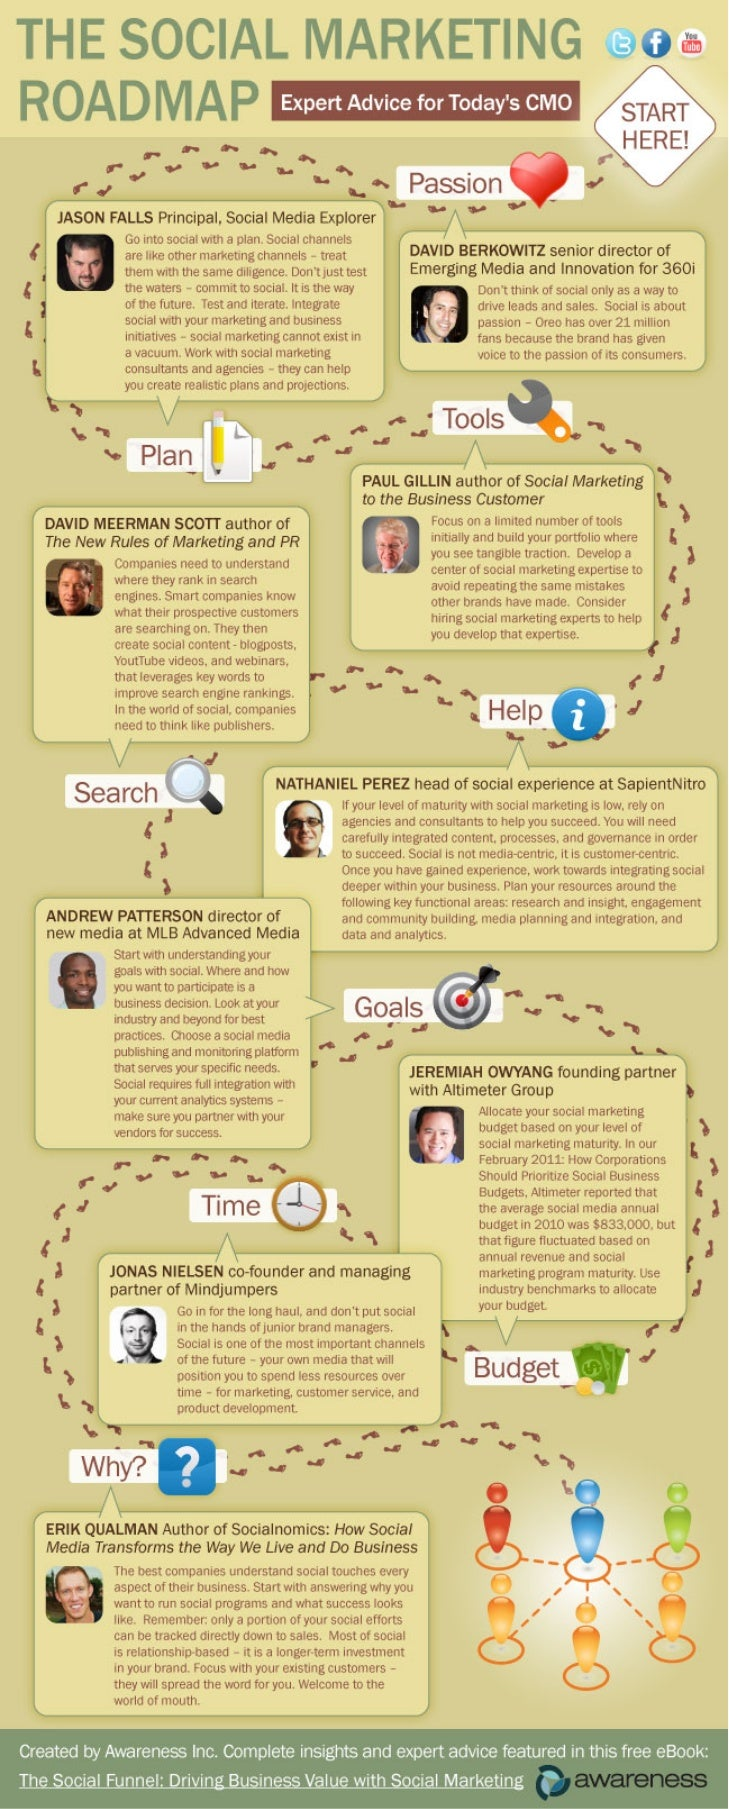 Social Marketing Roadmap [INFOGRAPHIC]